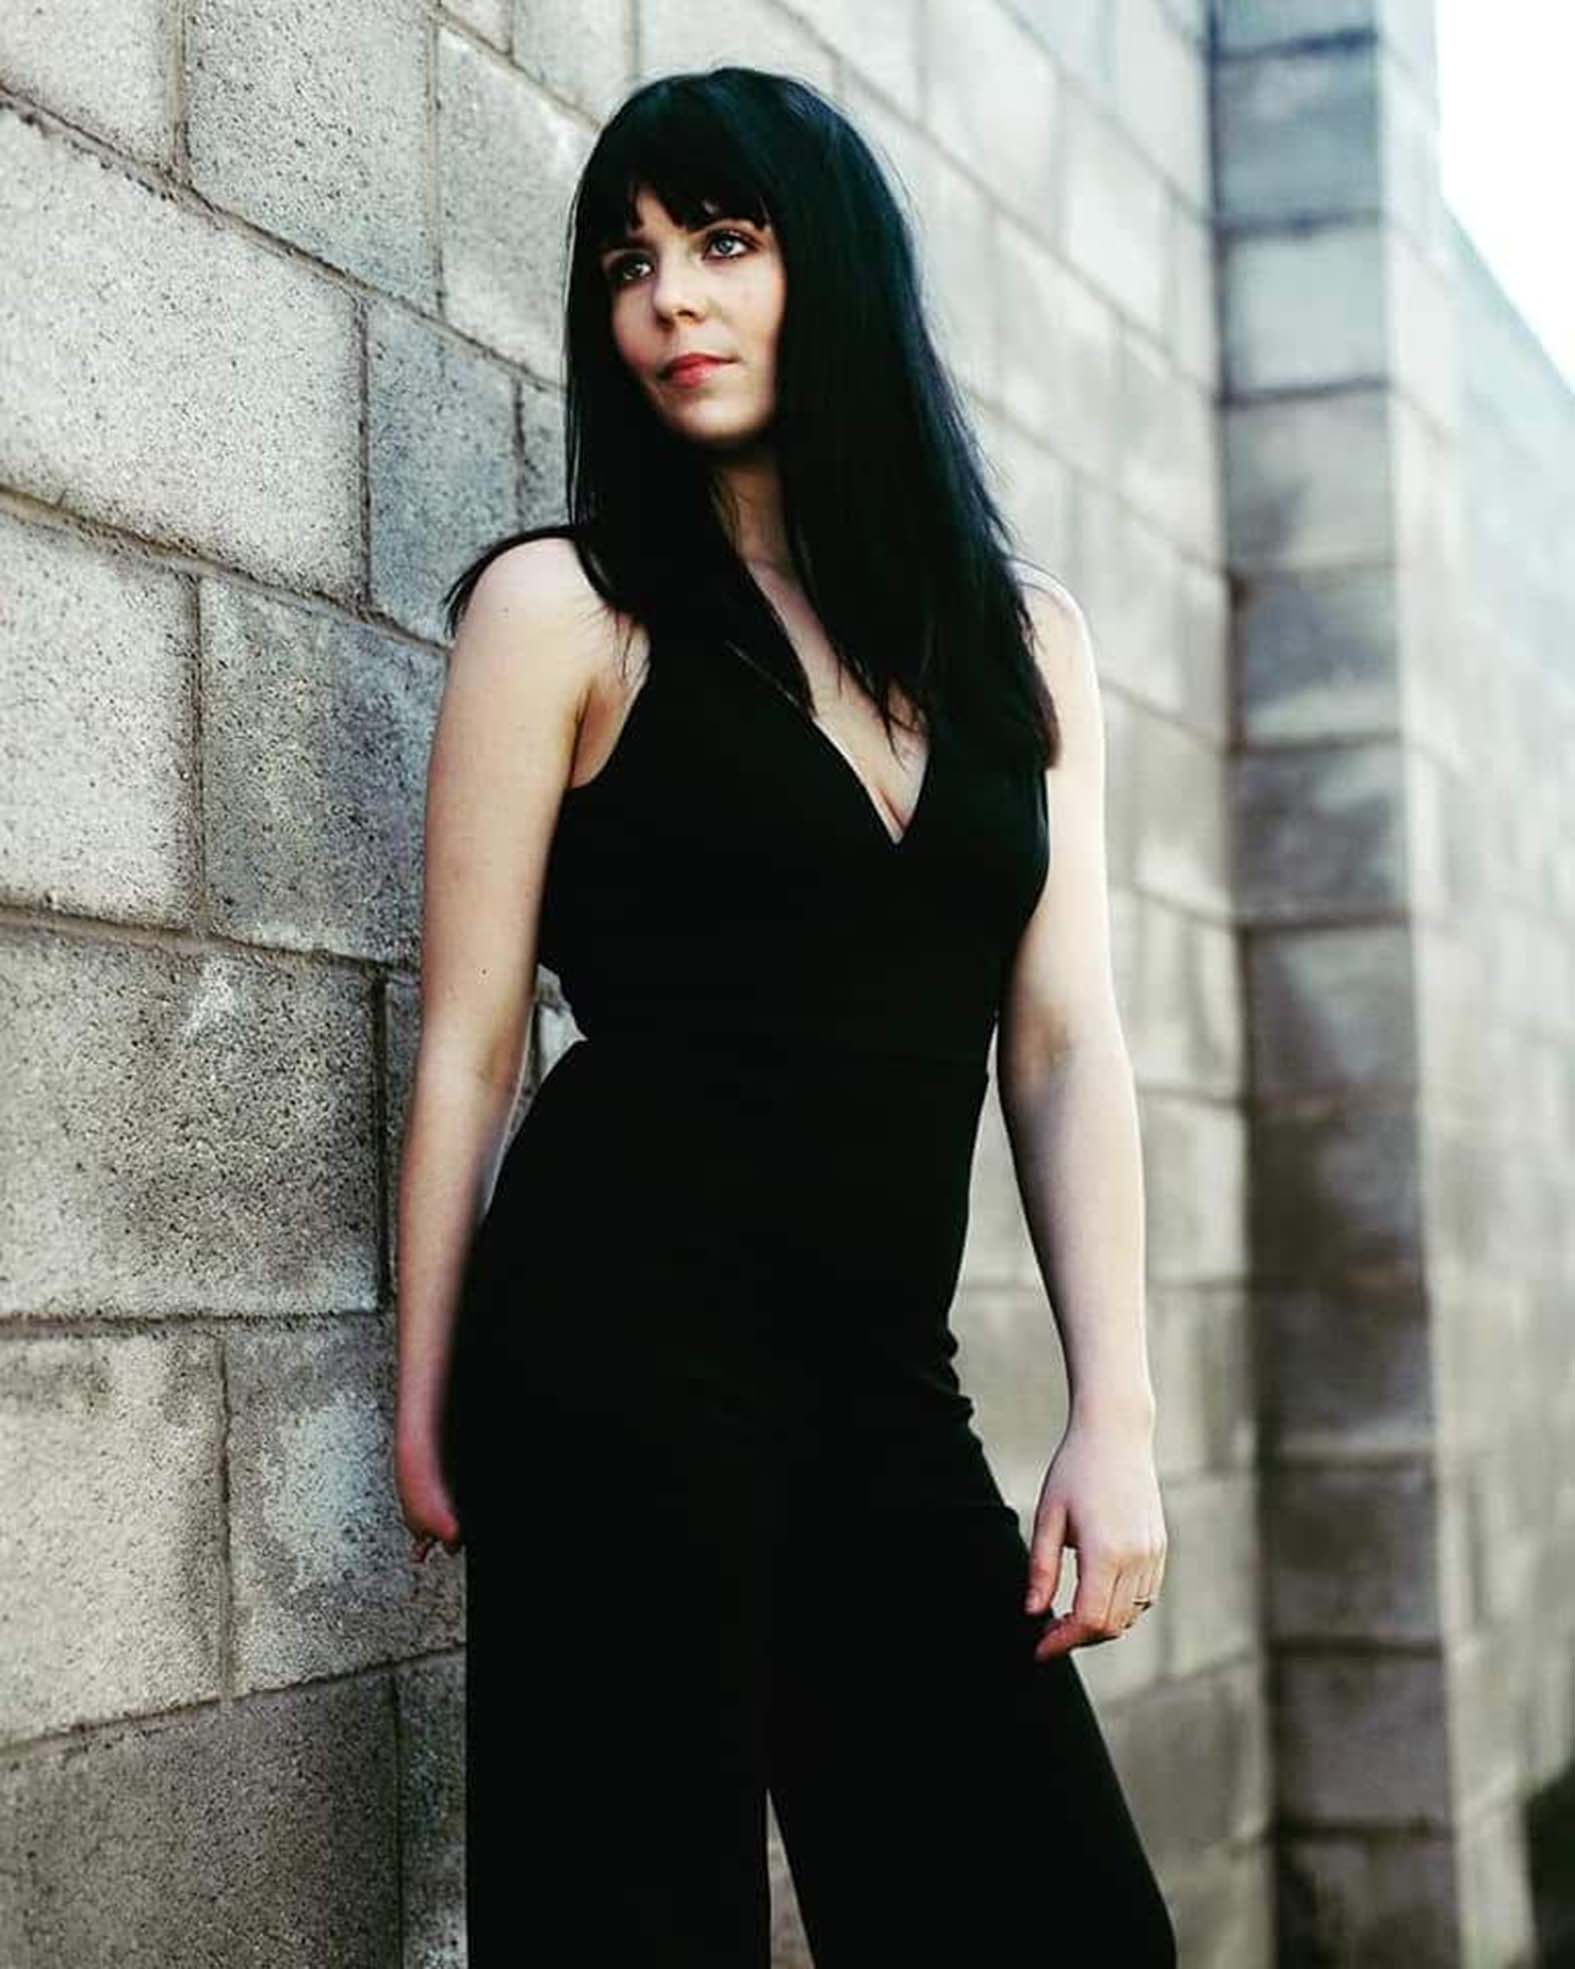 Laura, Zebedee Management, disabled, model agency, disability, woman (2)